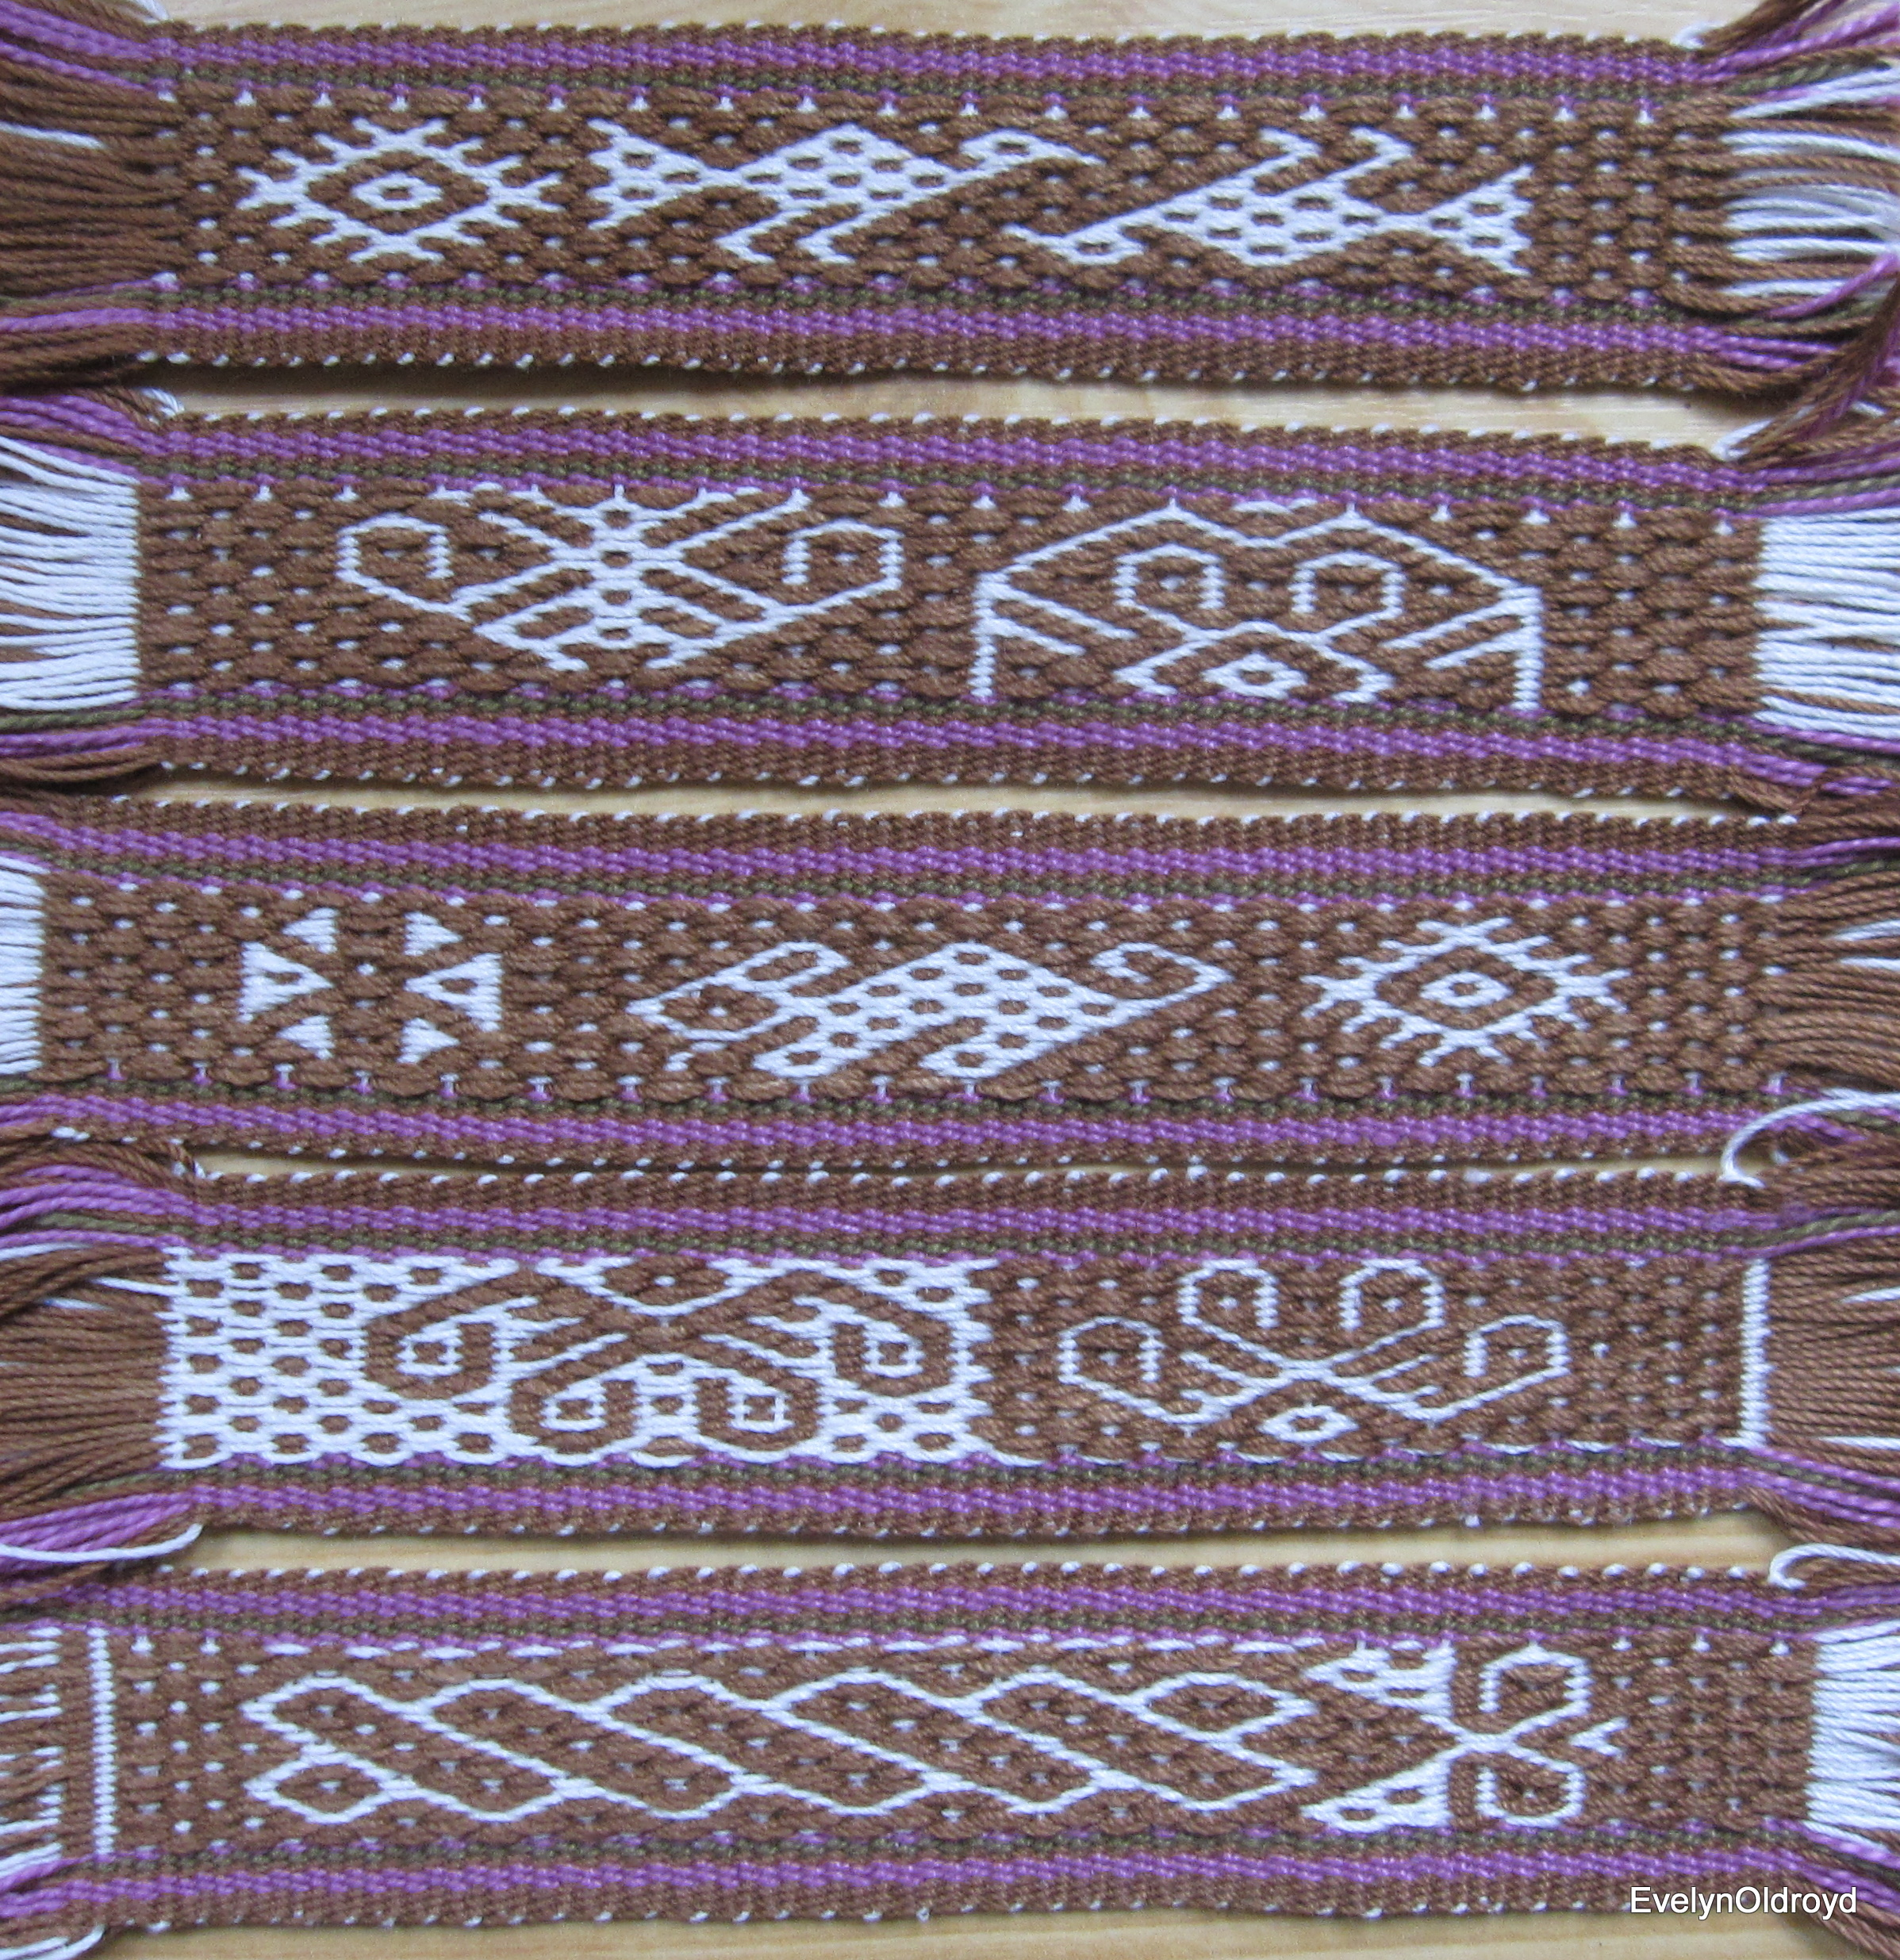 rigid heddle loom diagram ford f 350 fuse 8 harness weaving patterns get free image about wiring